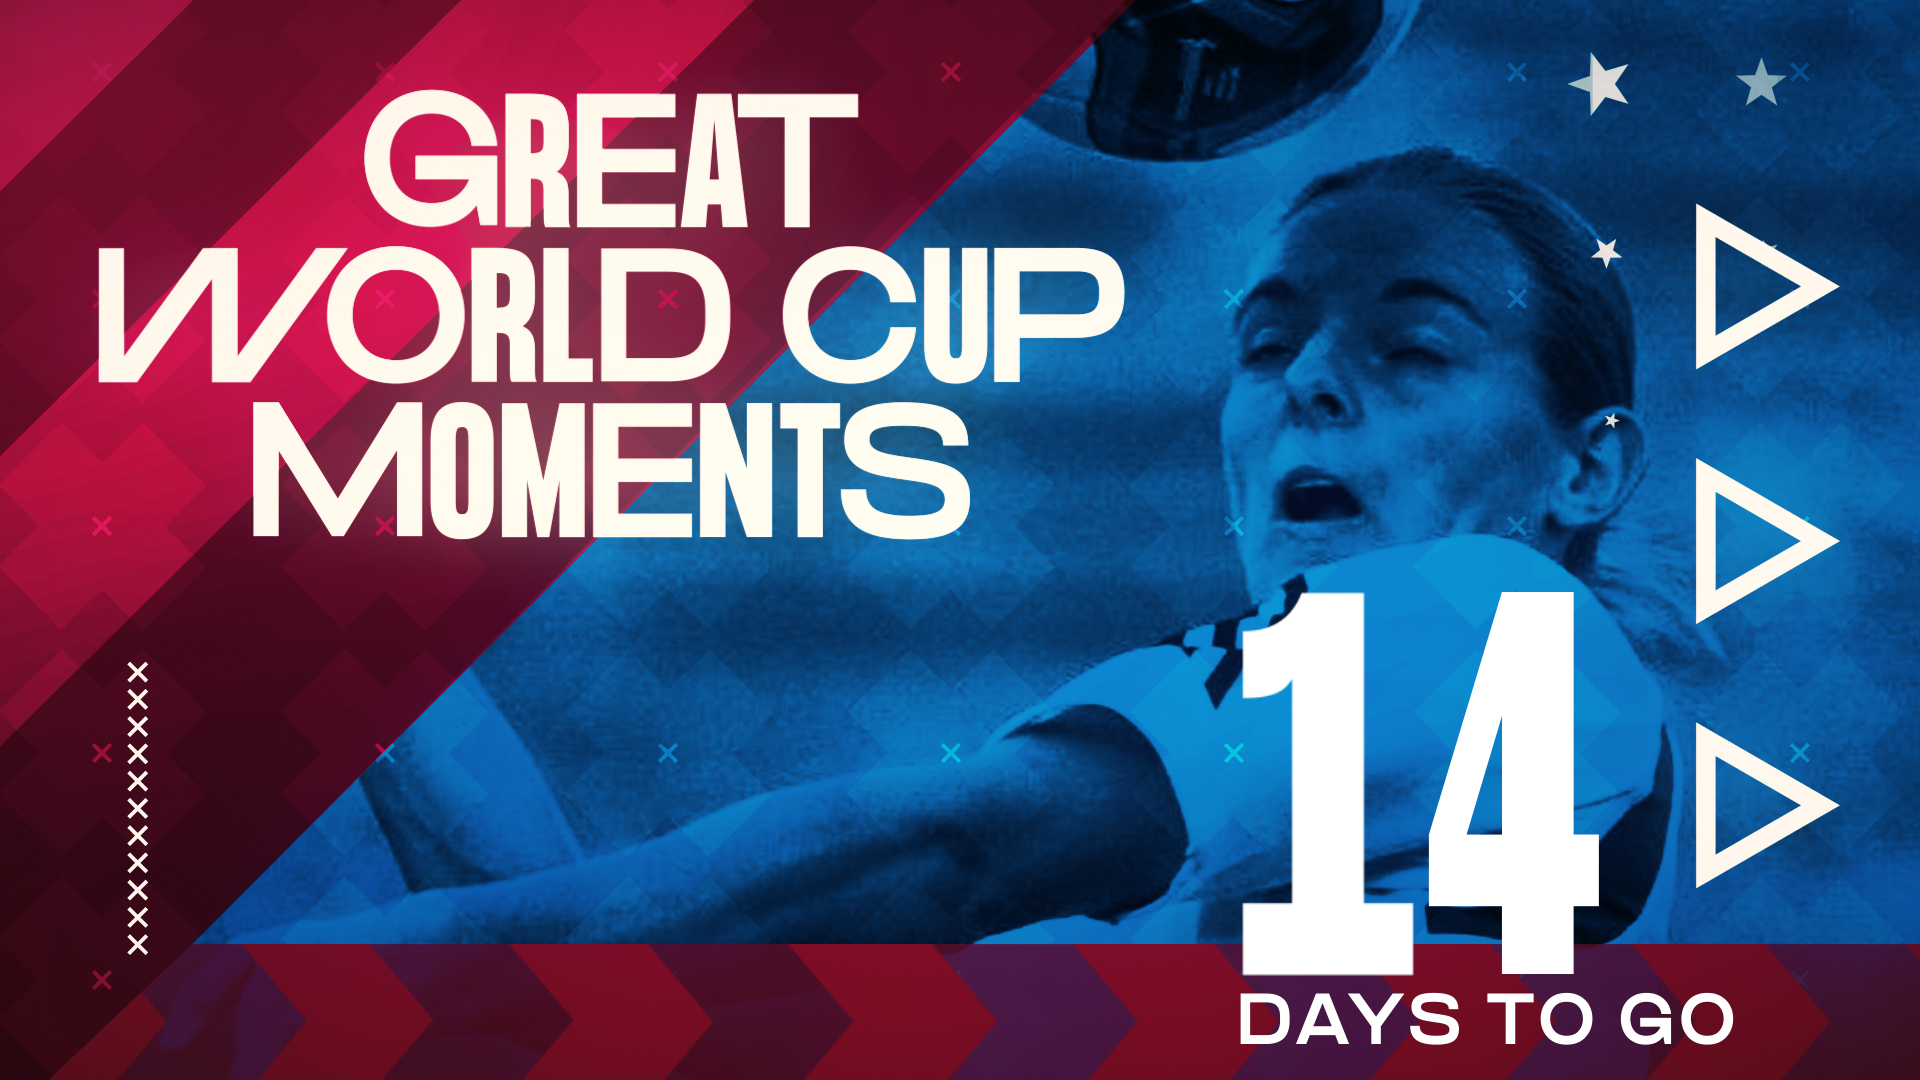 Women's World Cup 2019: Germany win 2003 final with golden goal - 14 days to go